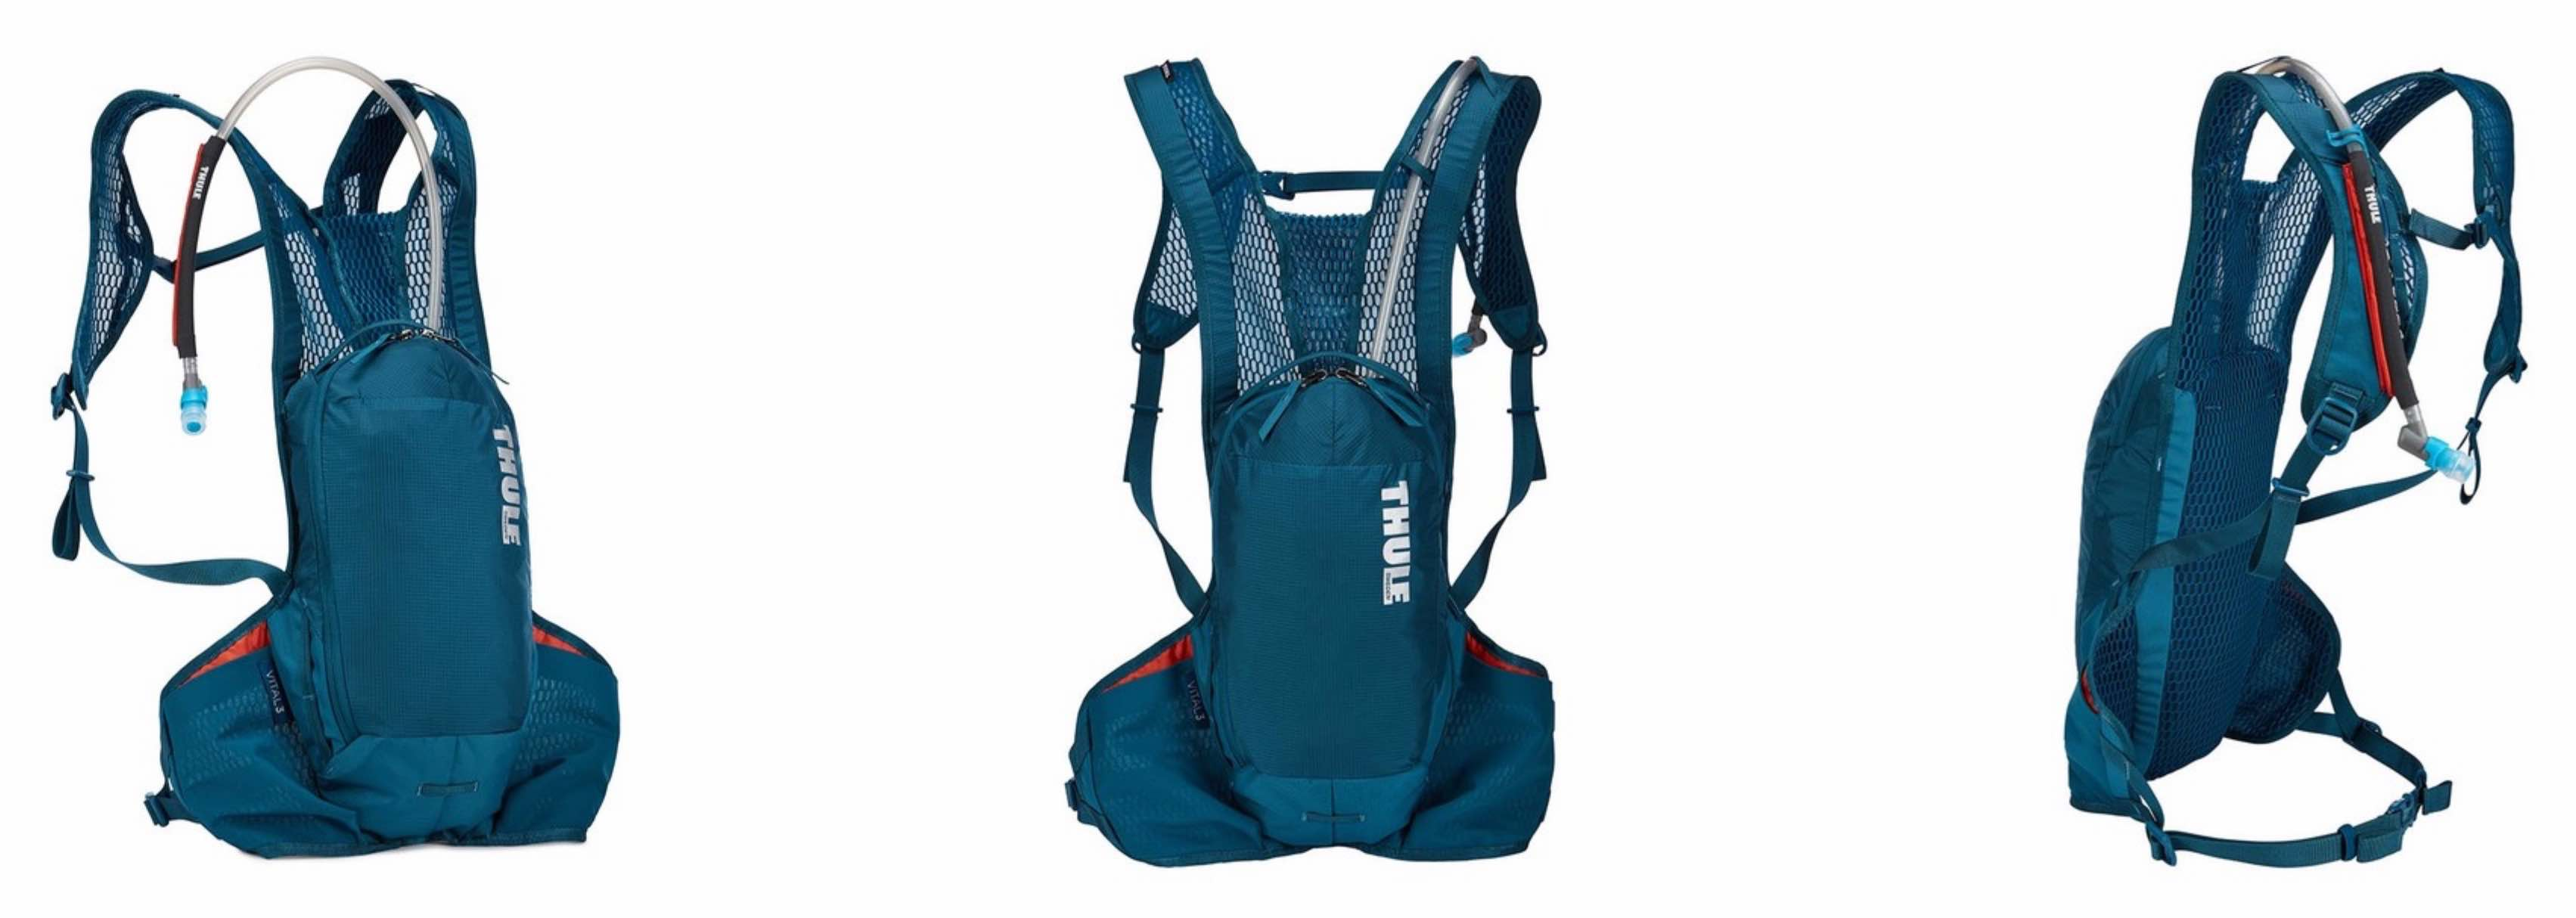 Thule Vital 3L Hydration Backpack for Mountain Biking